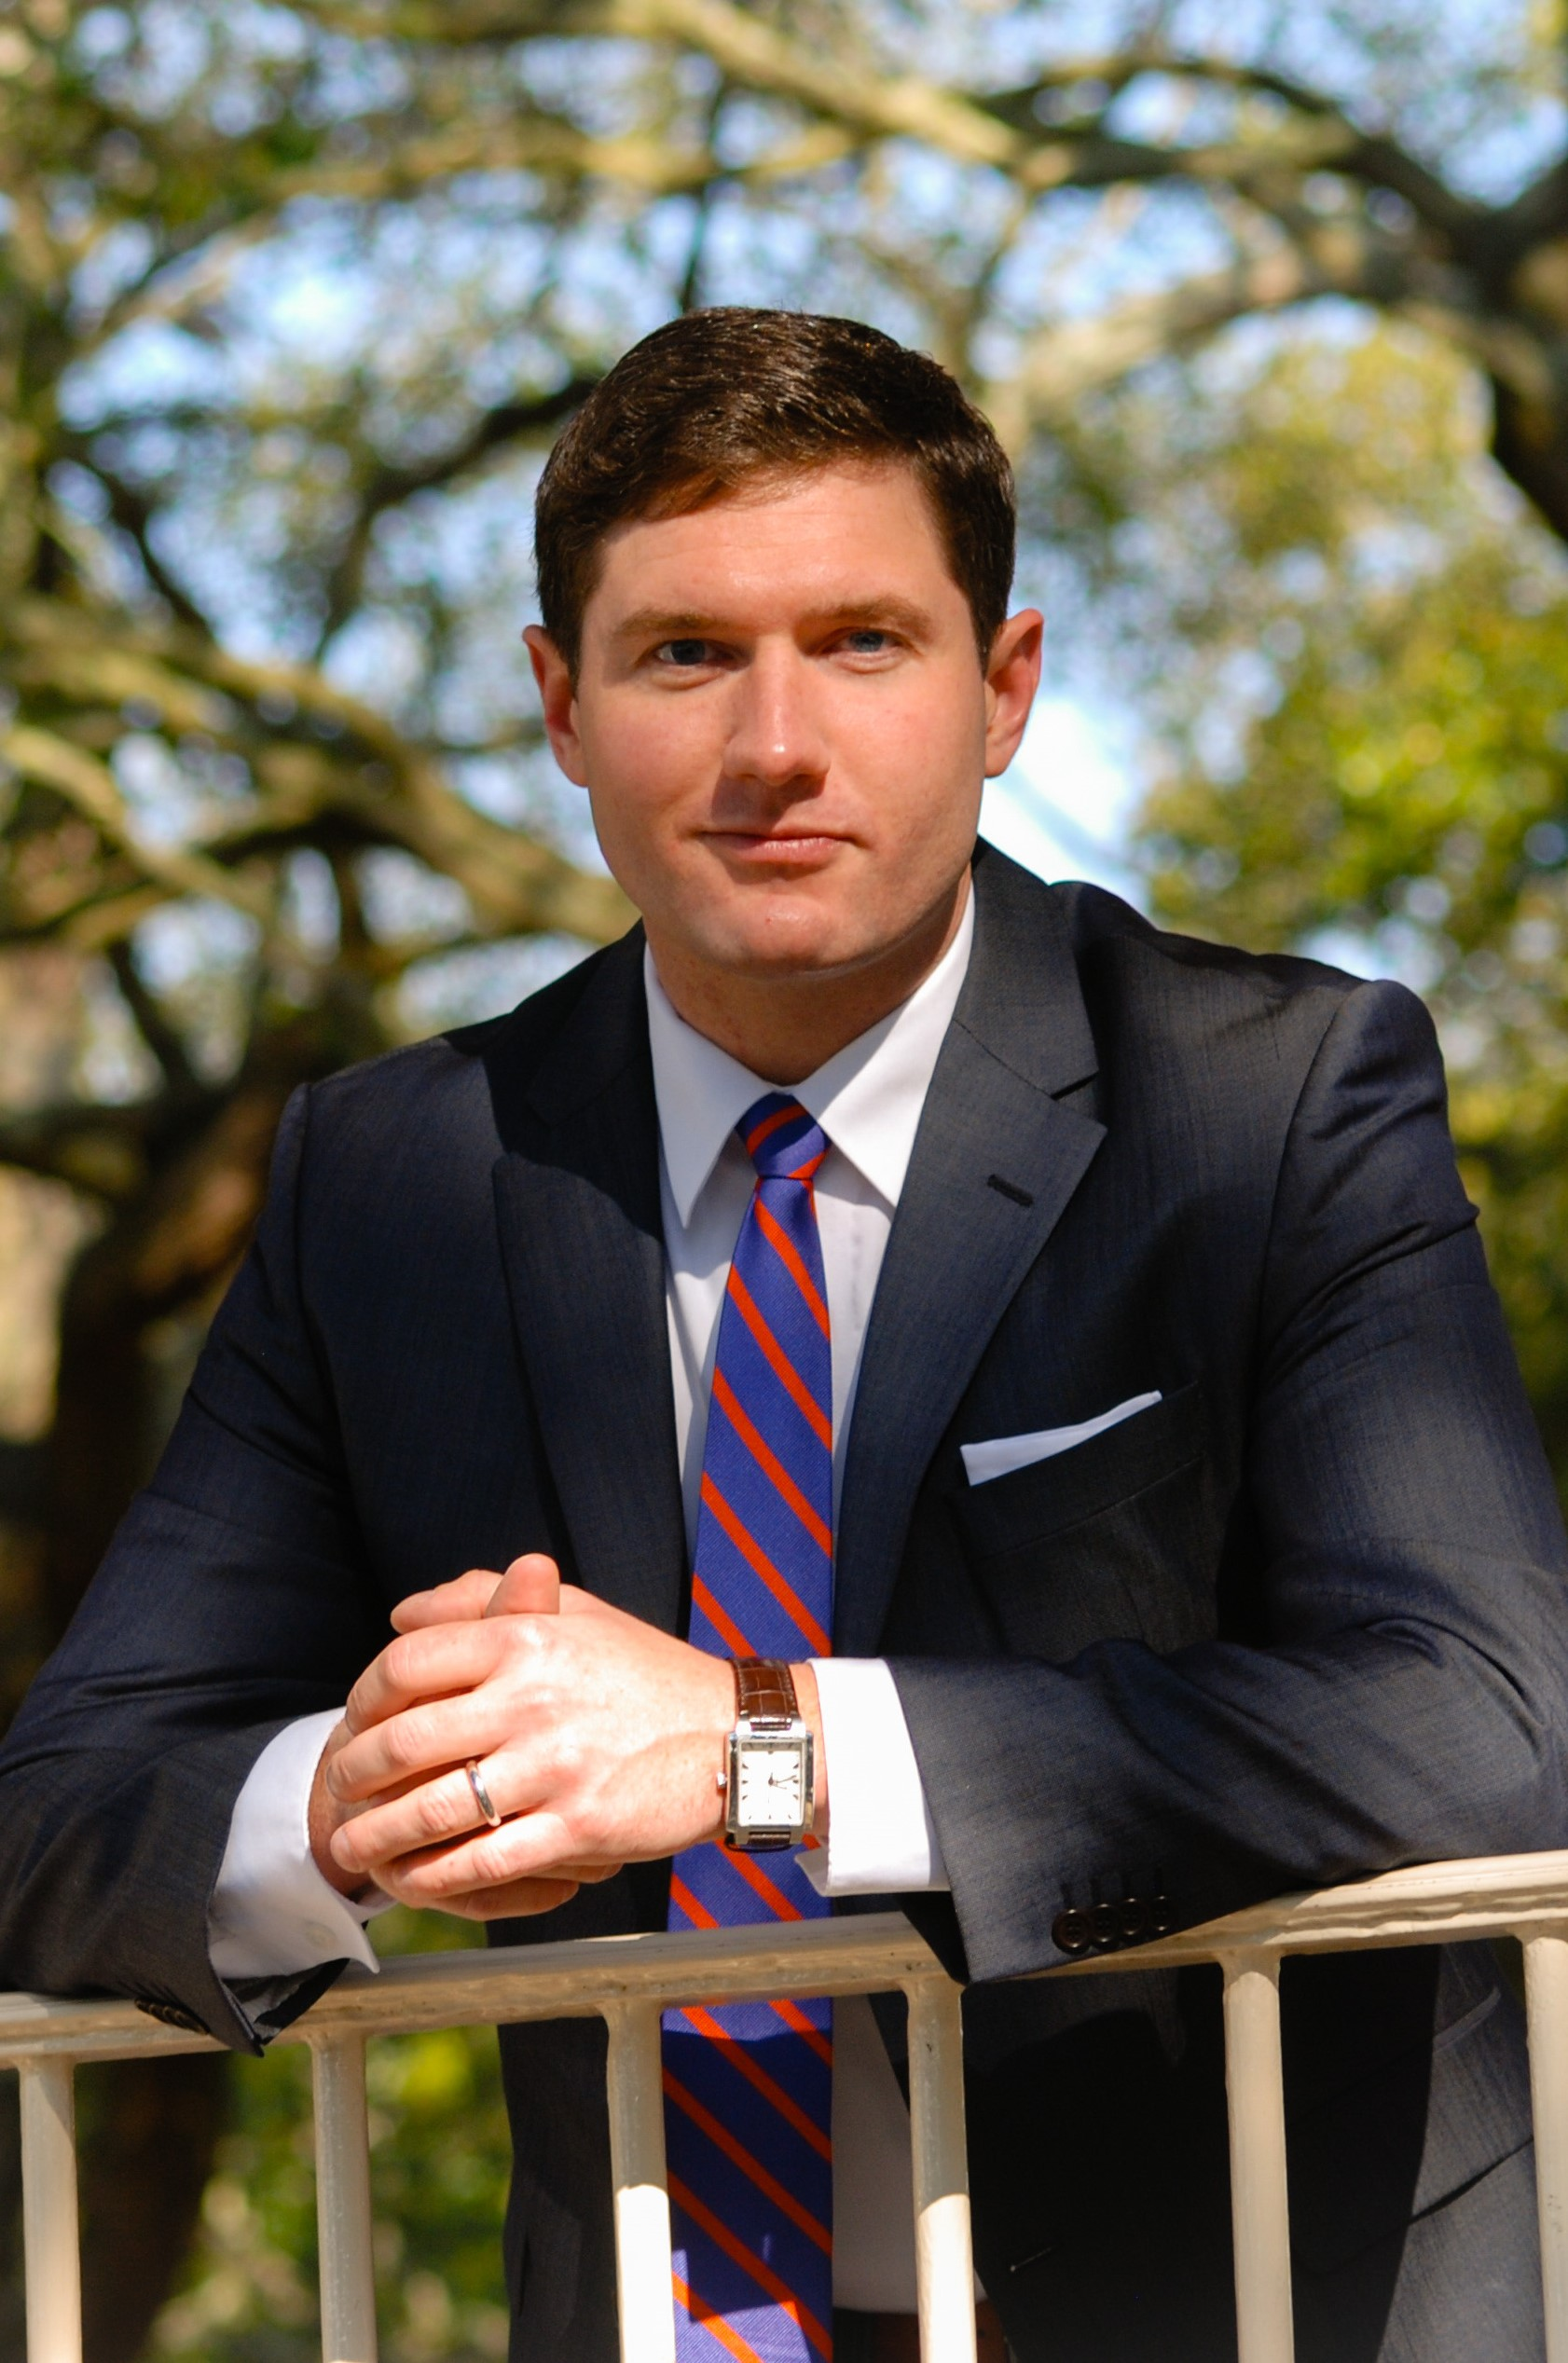 Nathan Senn - Business Lawyer